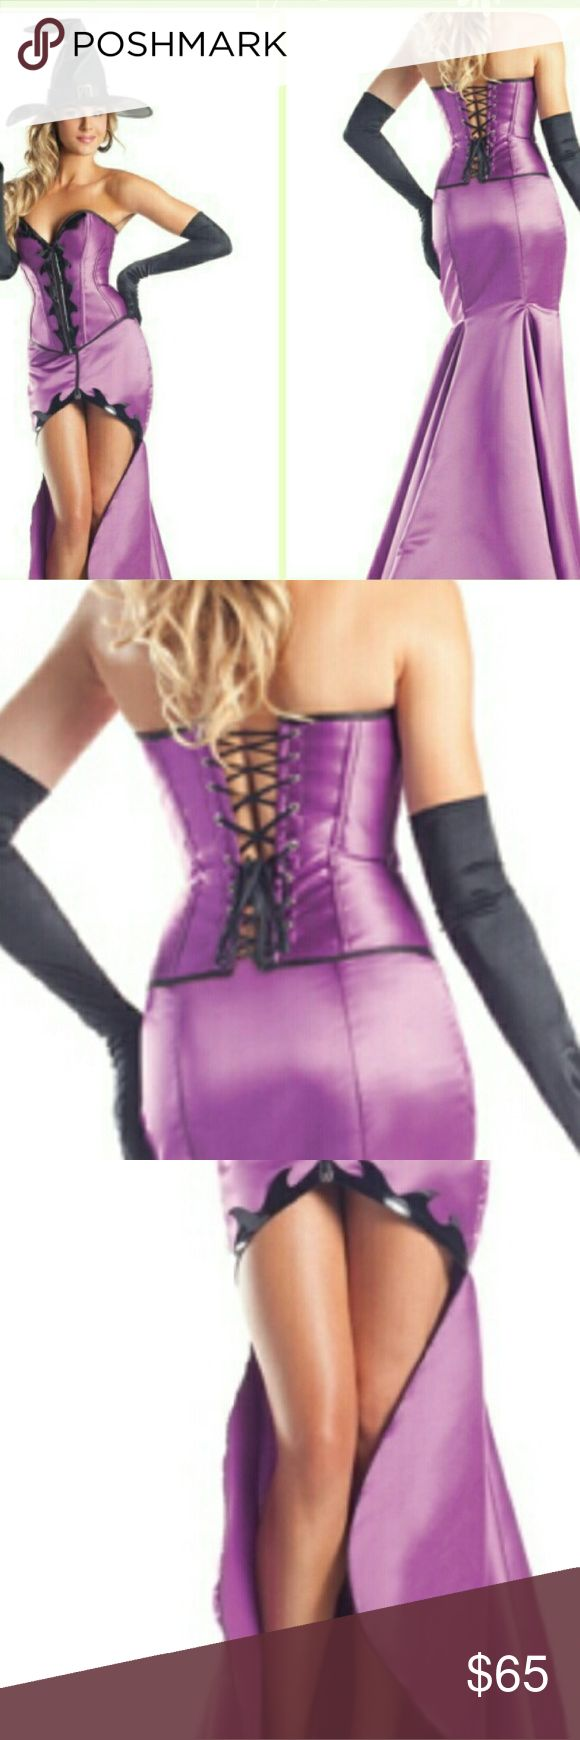 Hocus Pocus Halloween costume Hocus Pocus Honey Costume is a three piece set that features a purple strapless corset top with zipper front, black trim details, lace up back, matching skirt with a high/low hemline and black witch hat. (Gloves not included.)SIZING RUNS SMALL PLEASE SELECT ONE SIZE UP. Bewicked Dresses Maxi